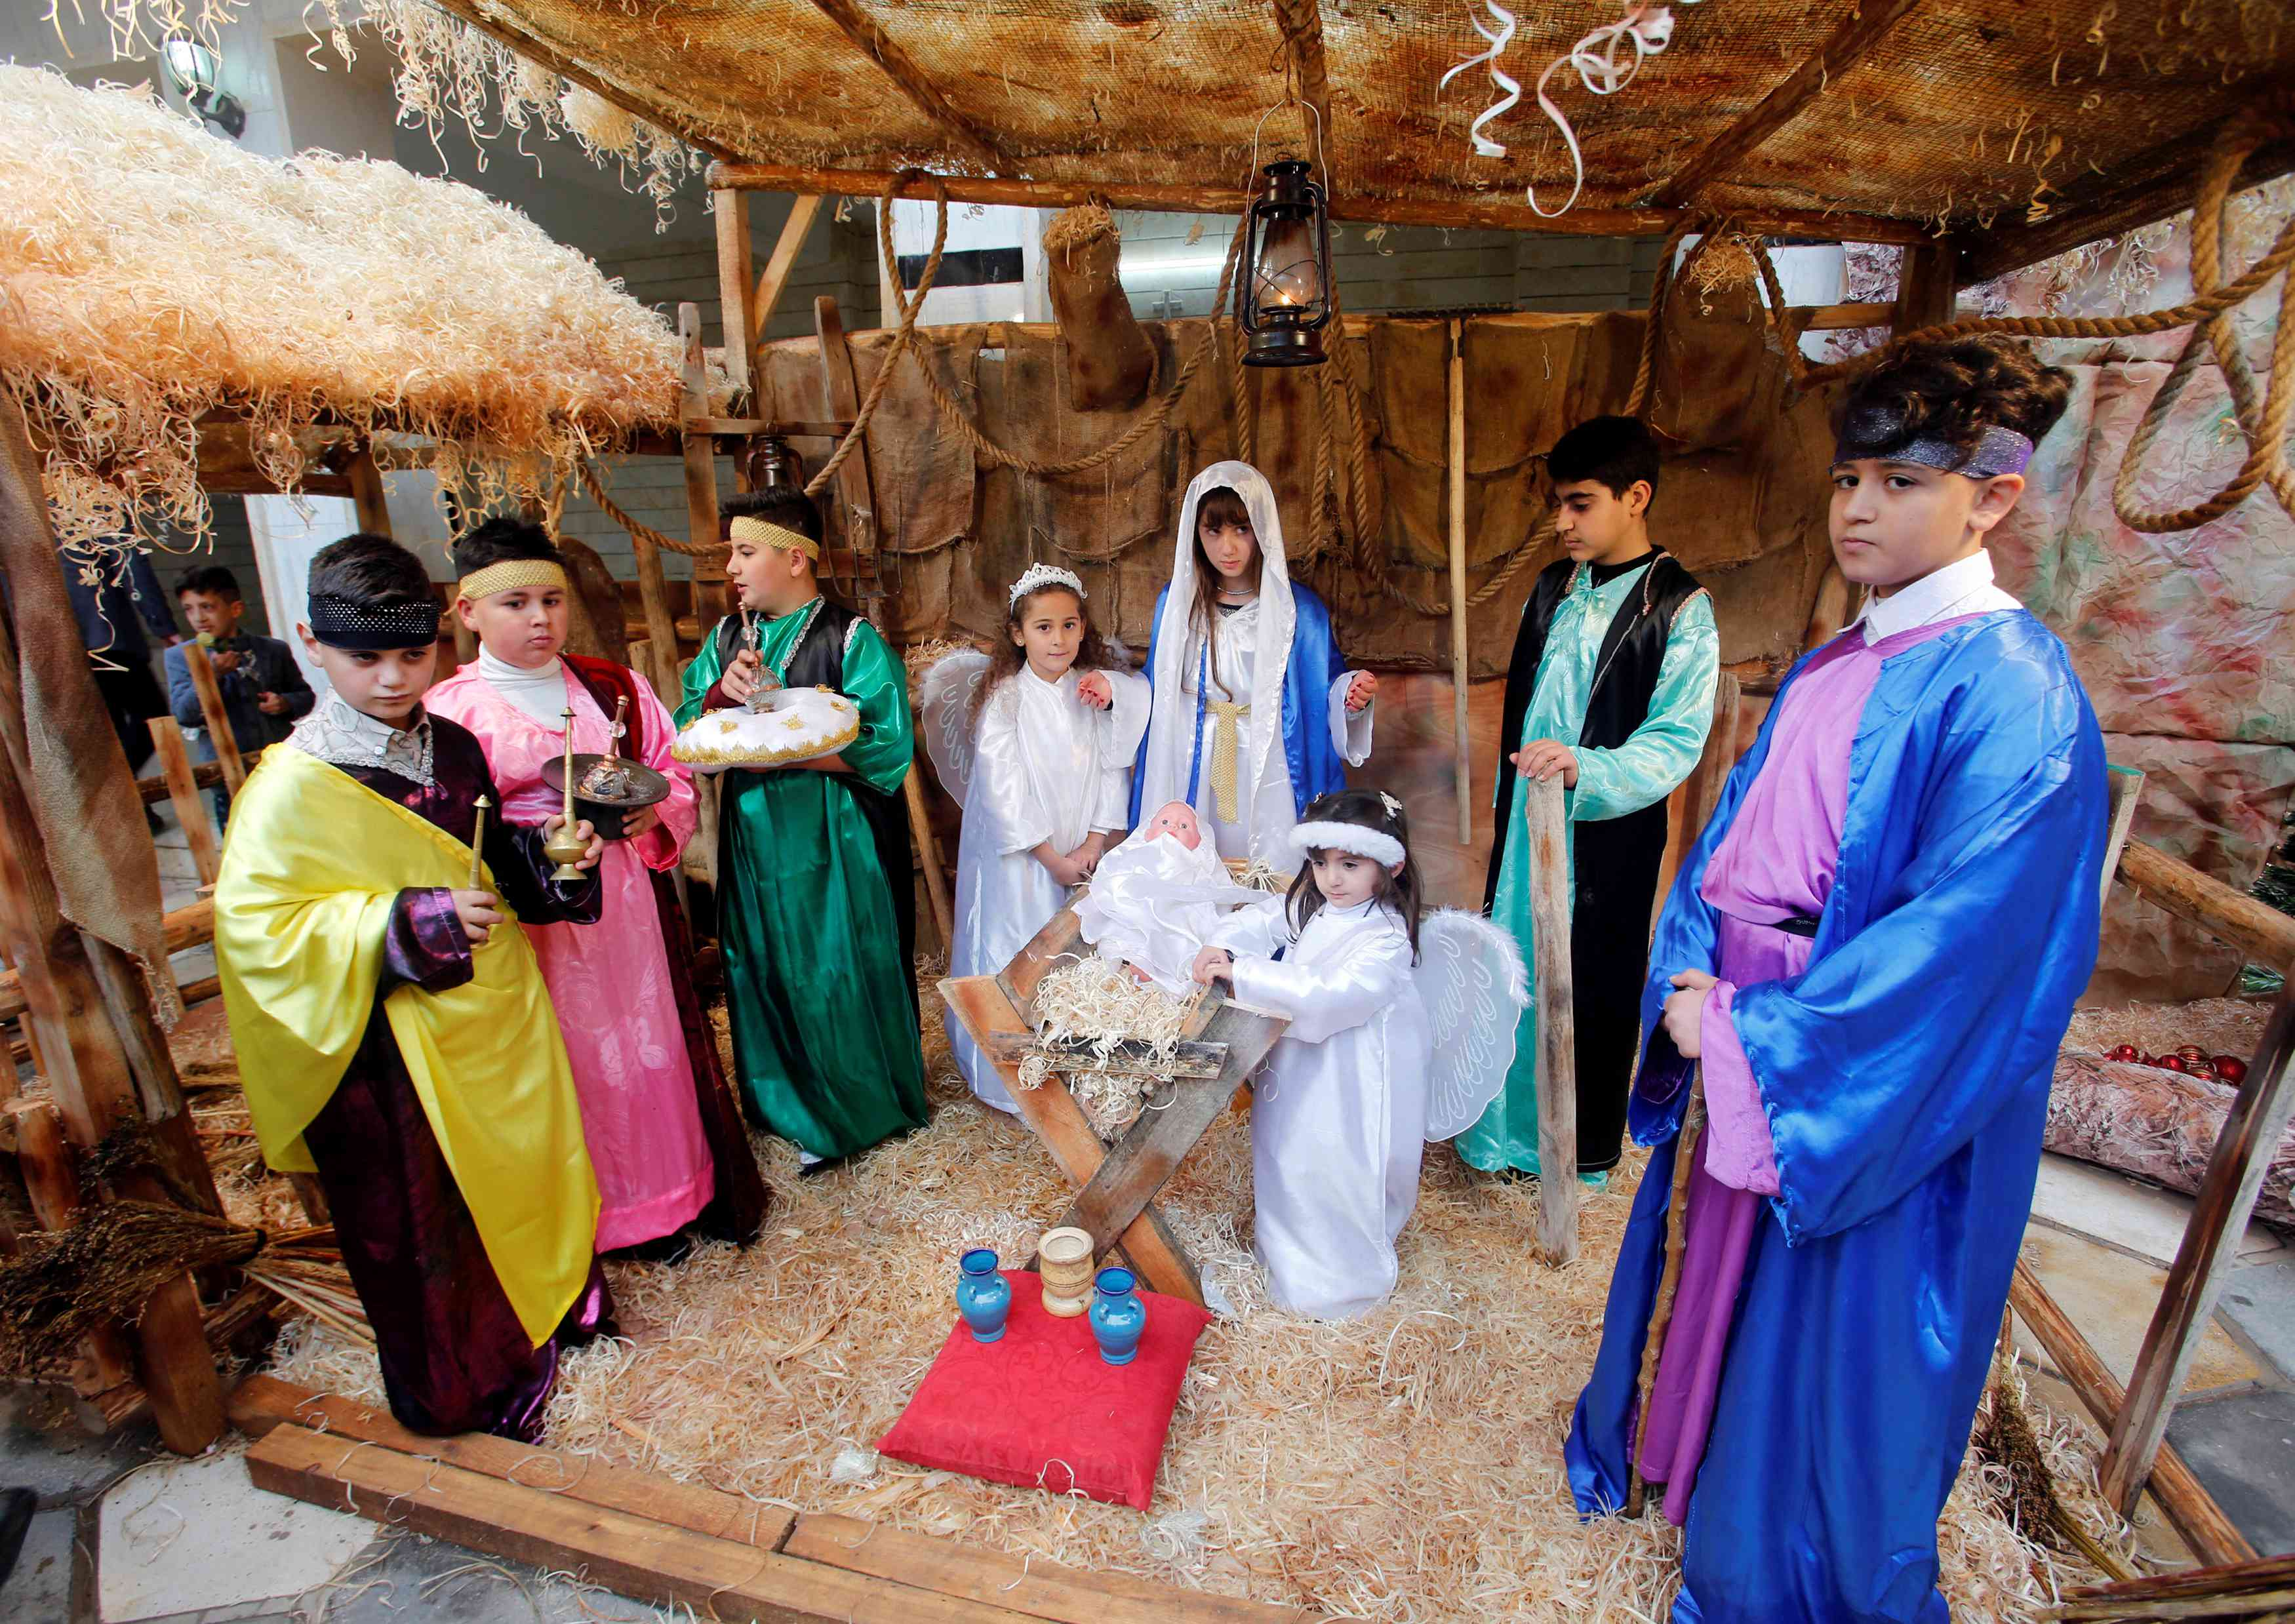 Children participate in a nativity scene in Bashiqa town, east of Mosul, in Iraq on Tuesday. (Photo credit: Khalid al-Mousily/Reuters)